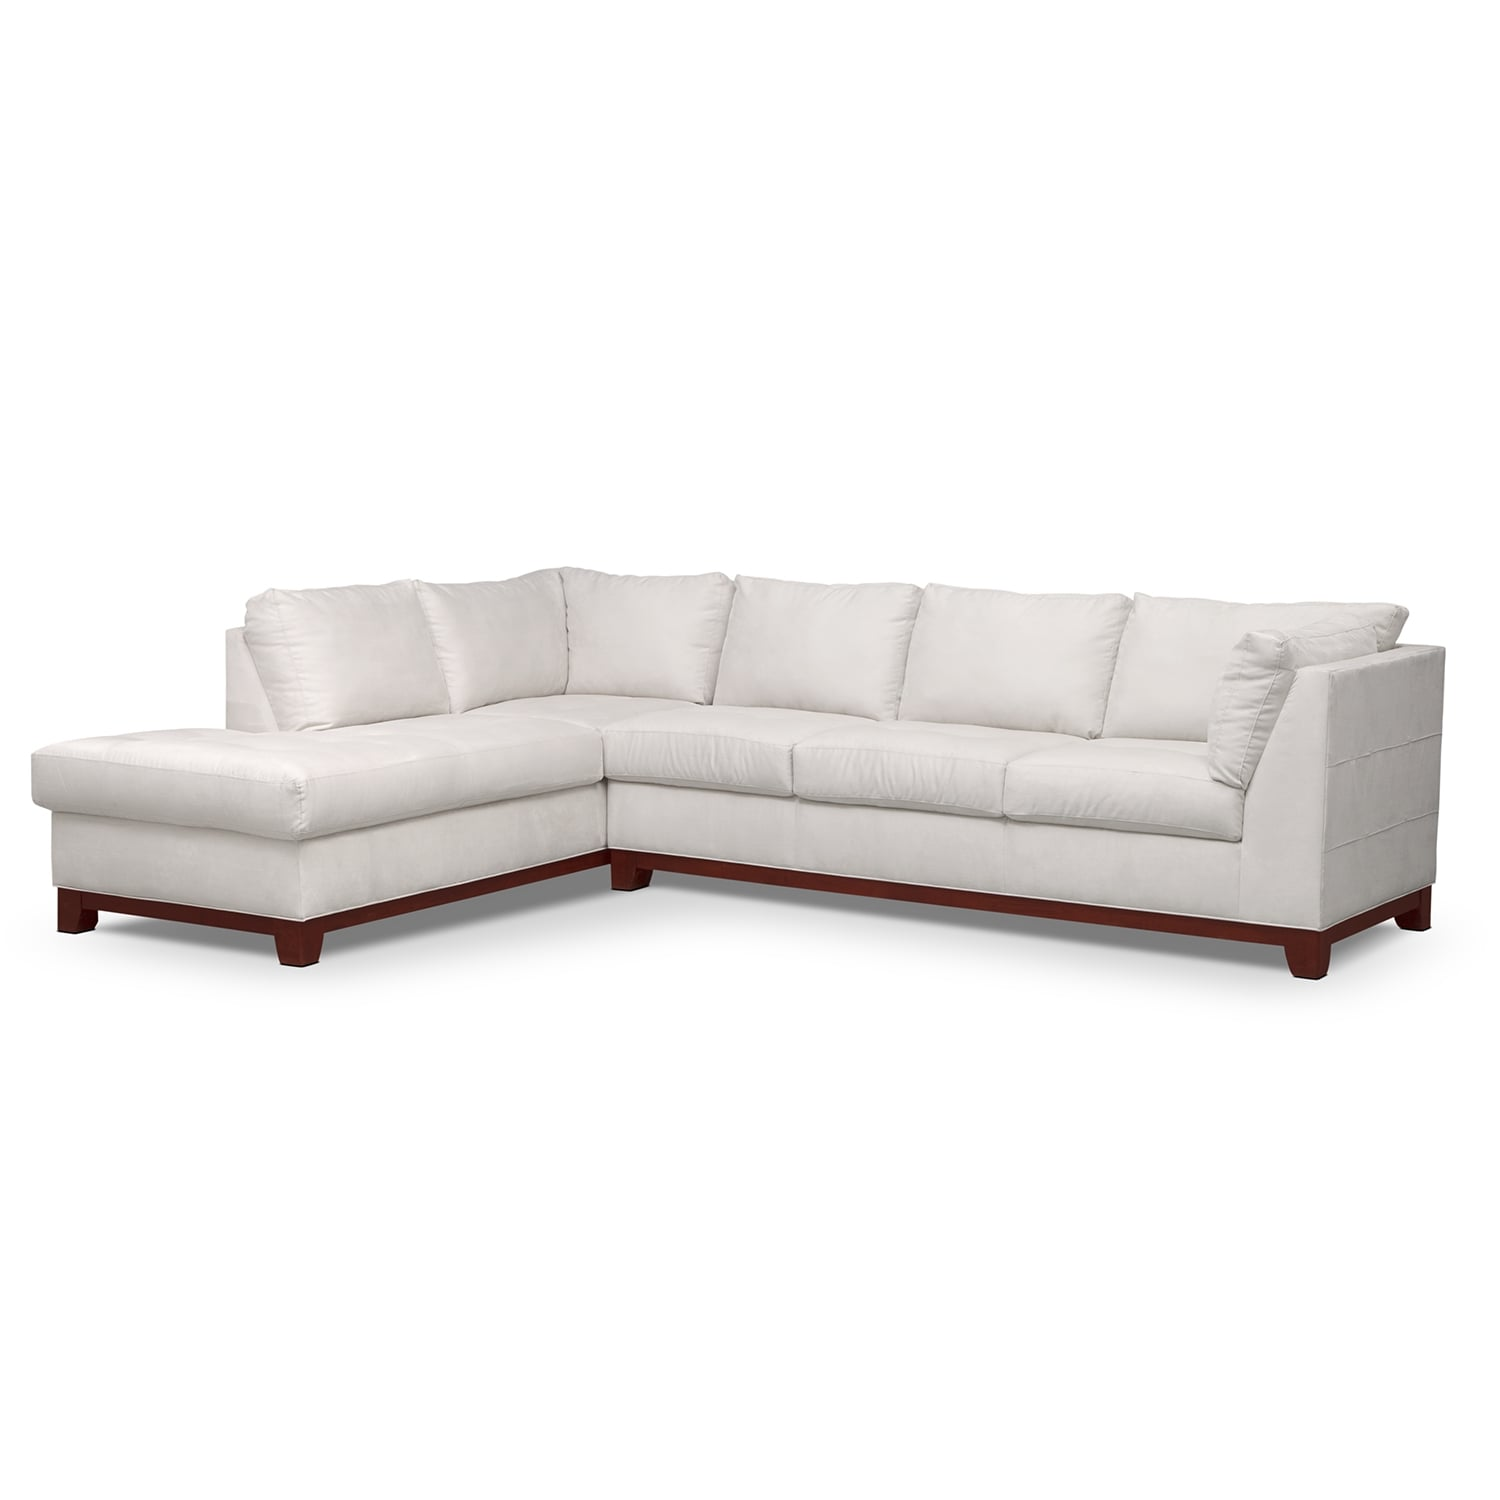 Soho 2 piece sectional with left facing chaise cement for 2 piece sectional sofa with chaise